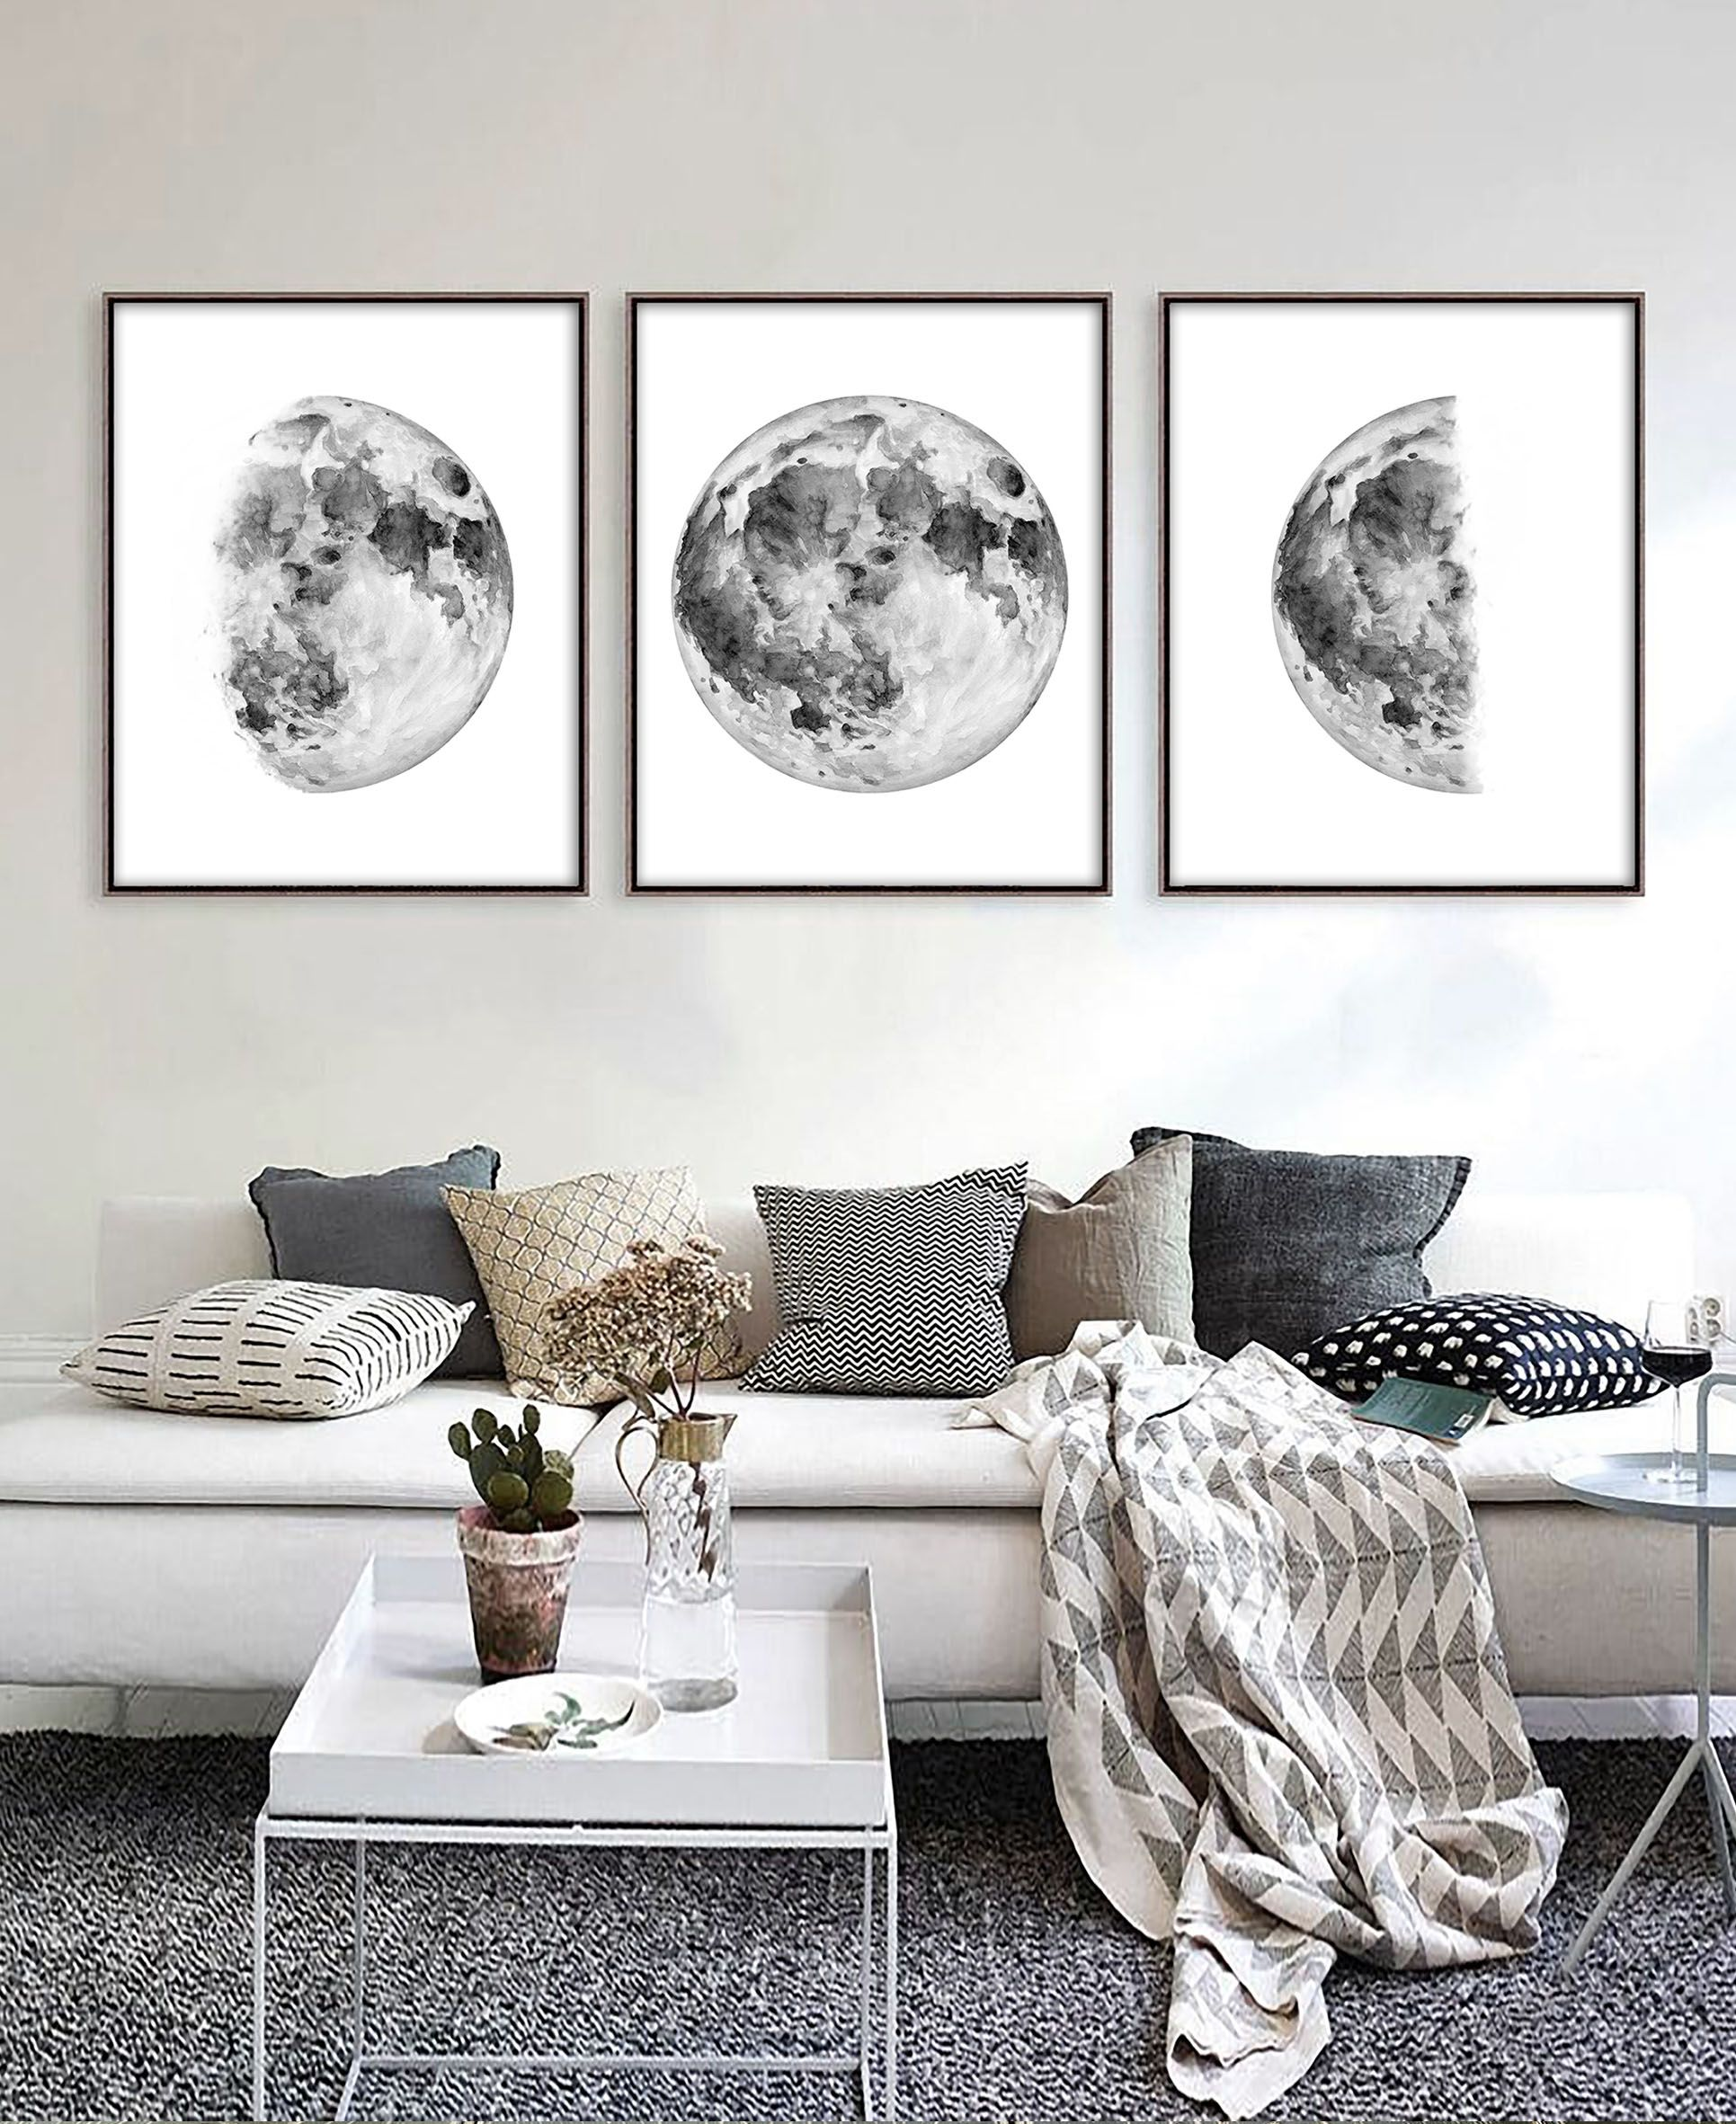 Printable Wall Art Set Of 3 Moon Phases Print Set Downloadable Prints Moon Print Art Wall Deco Wall Decor Bedroom Wall Art Prints Living Room Living Room Decor